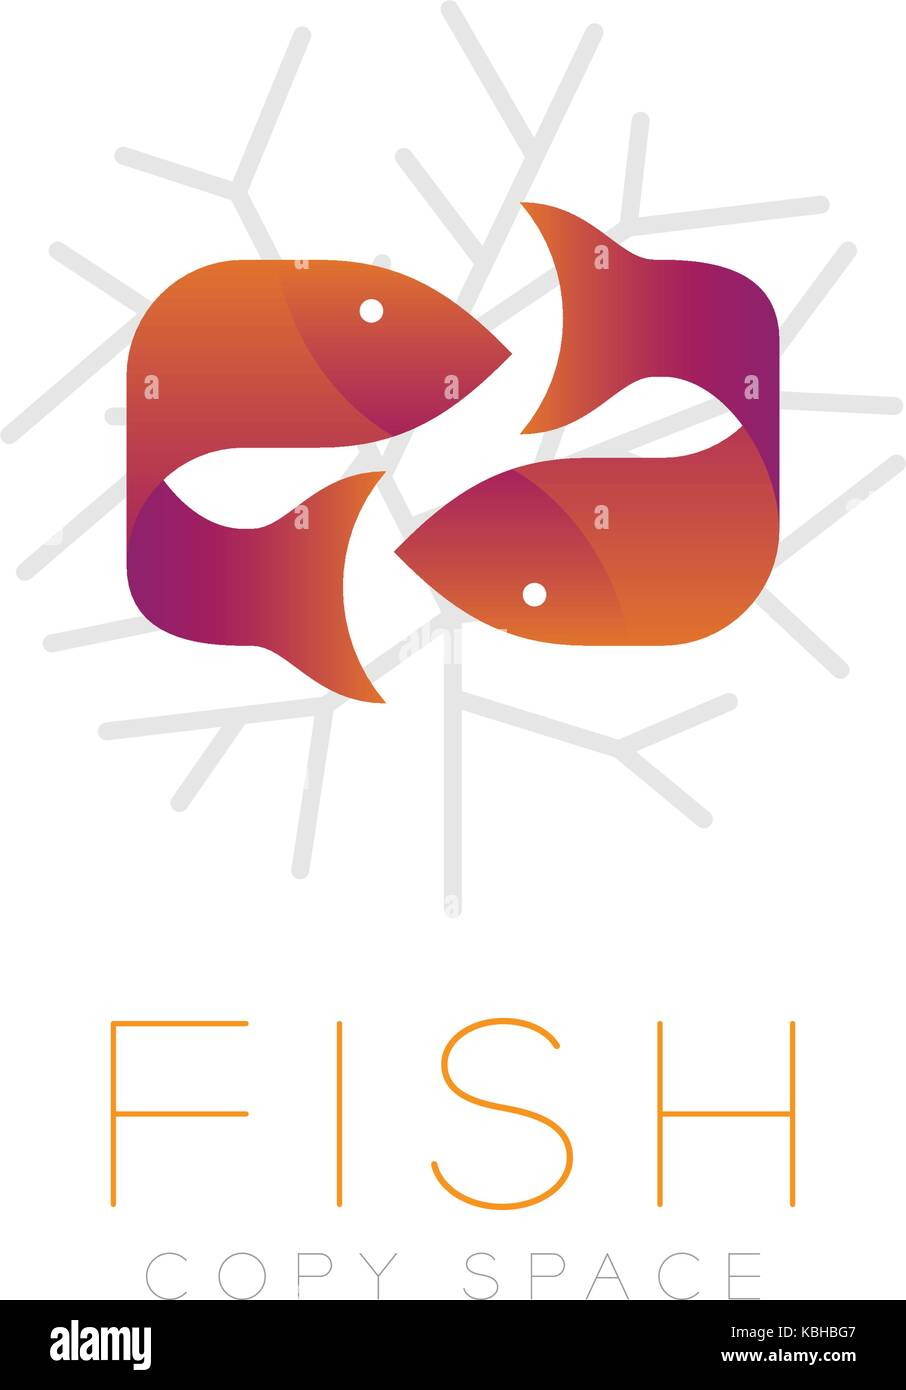 Two fish or pisces symbol icon and coral set orange violet gradient two fish or pisces symbol icon and coral set orange violet gradient color design illustration isolated on white background with fish text and copy spa buycottarizona Gallery